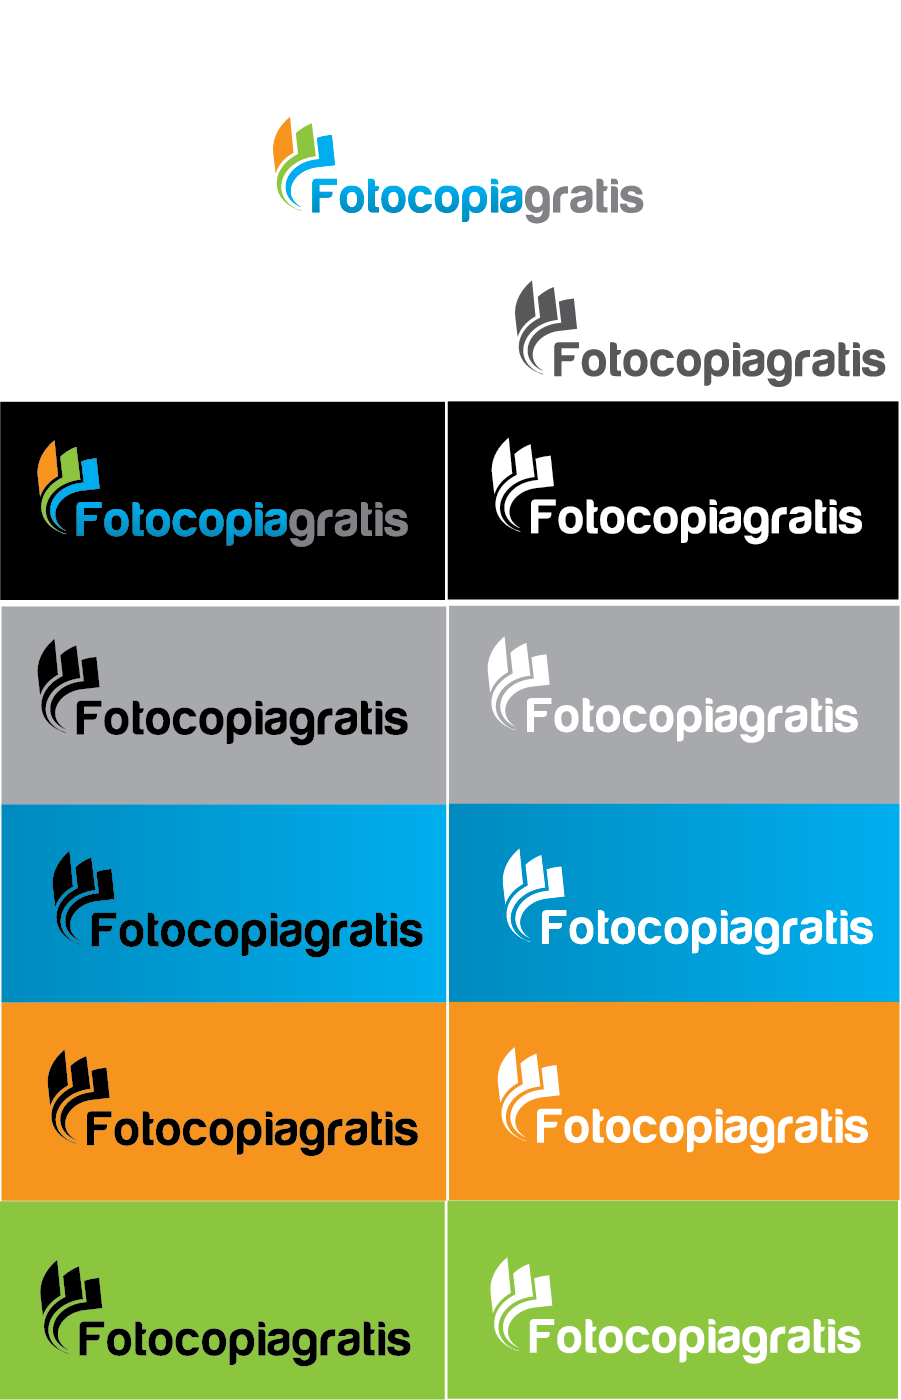 Logo Design by Private User - Entry No. 76 in the Logo Design Contest Inspiring Logo Design for Fotocopiagratis.